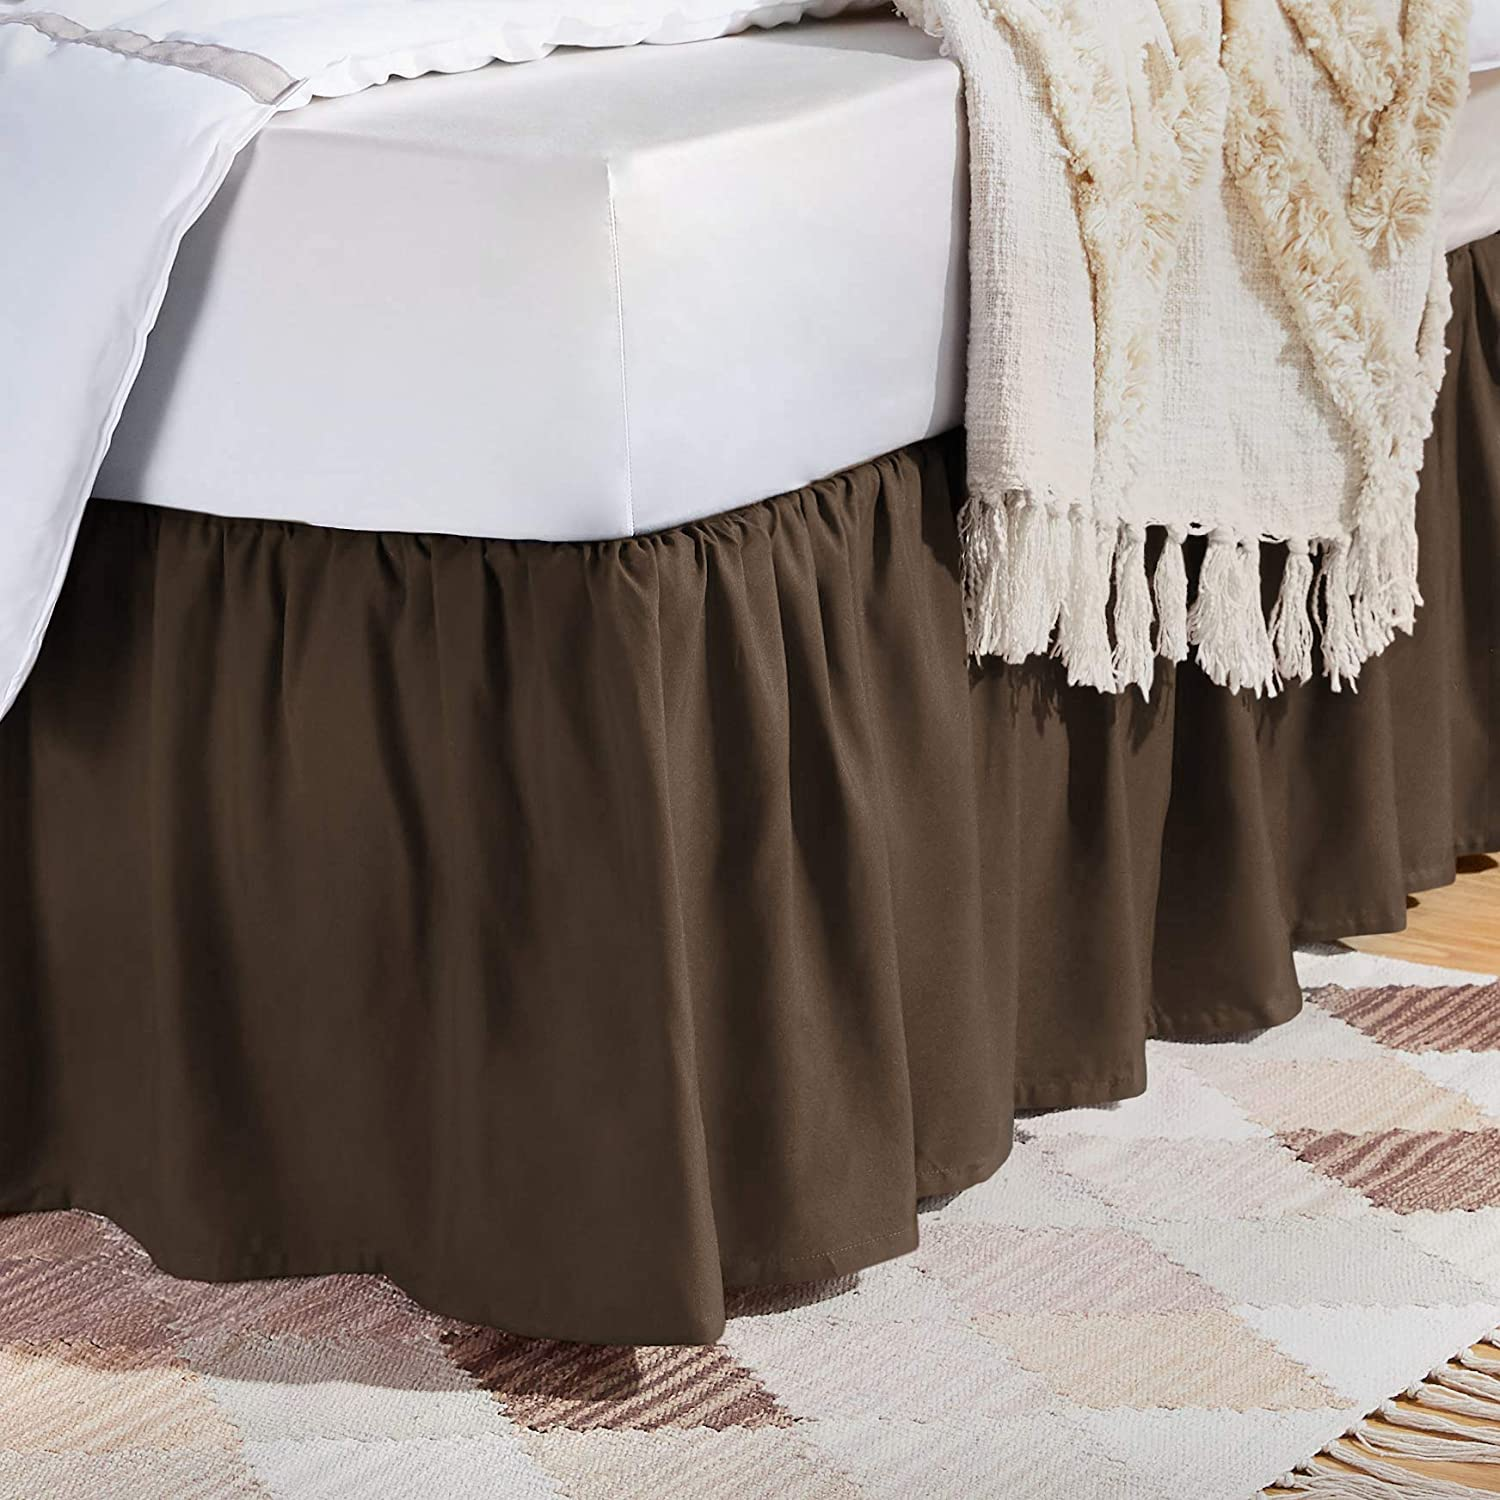 AmazonBasics Ruffled Bed Skirt - Queen, Chocolate